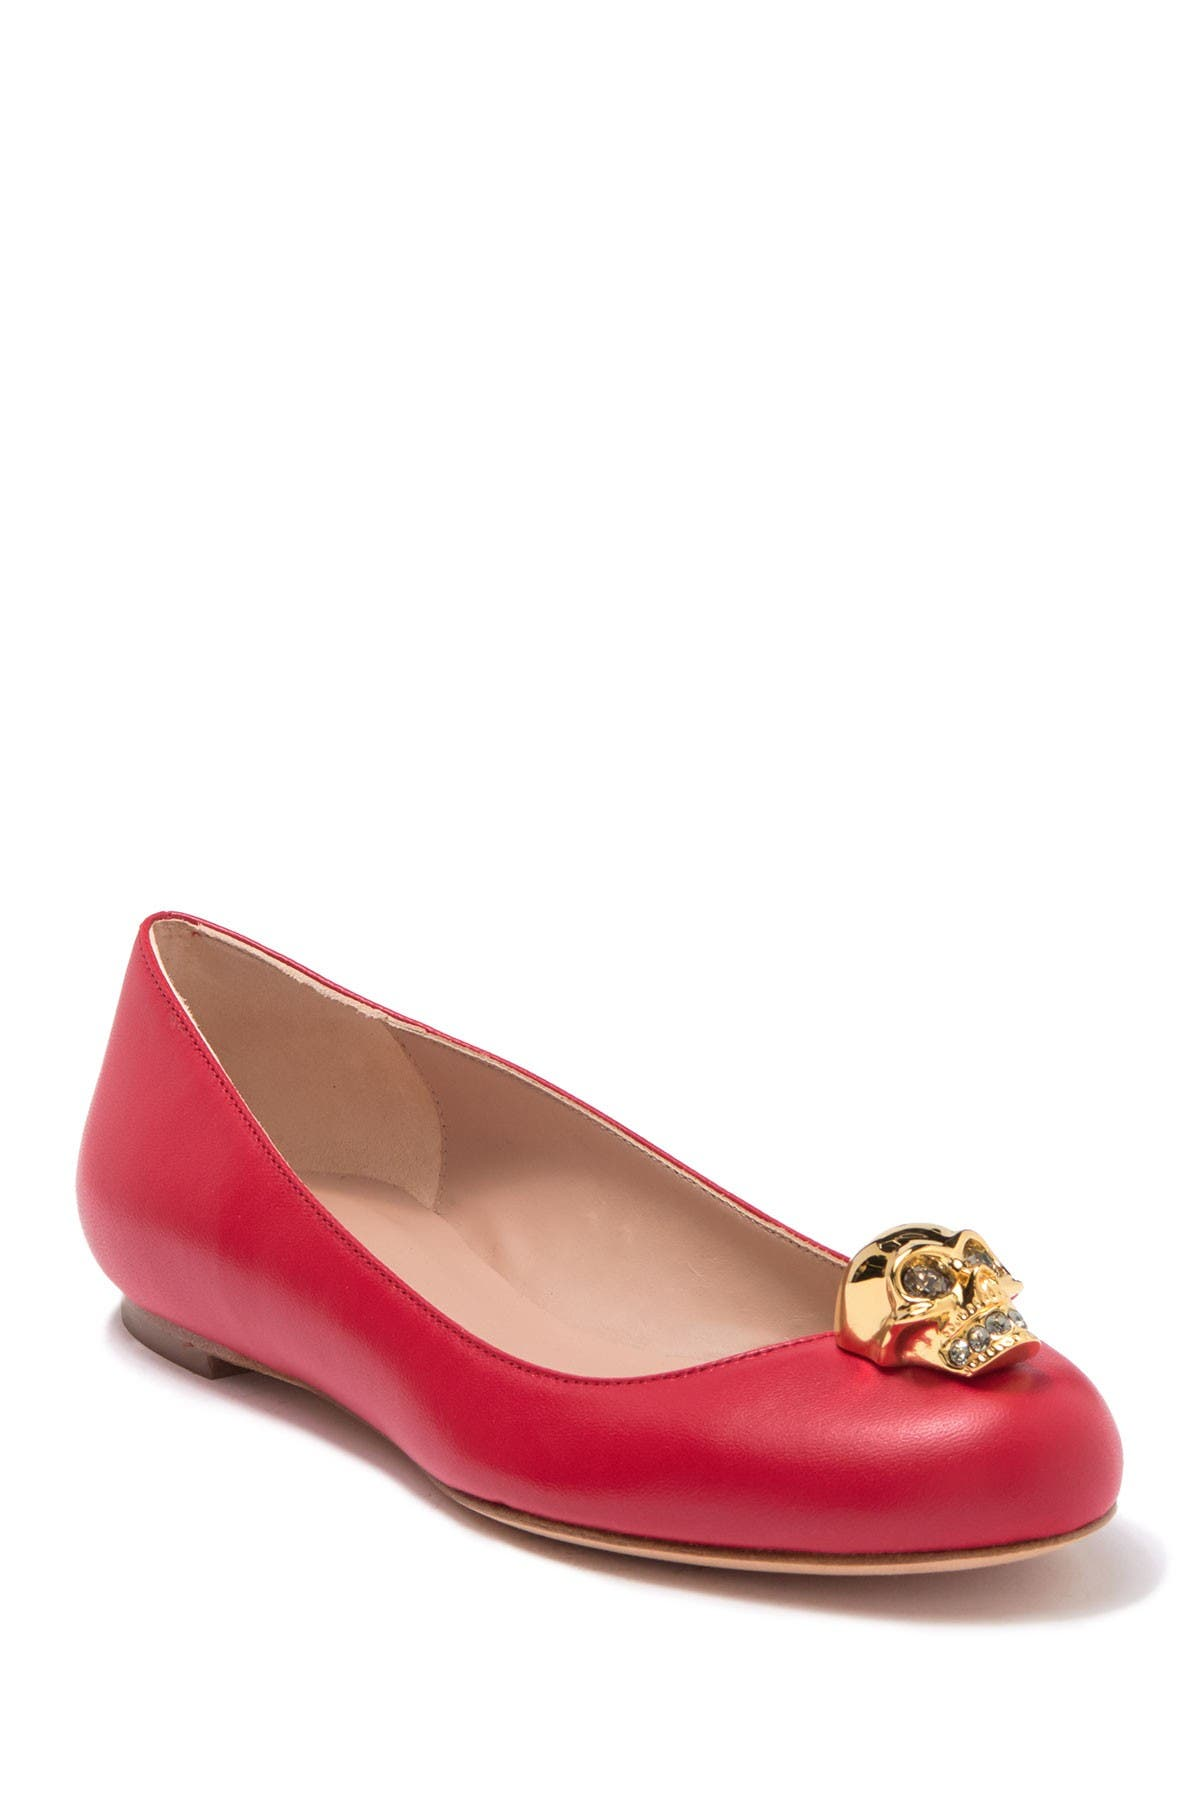 Image of Alexander McQueen Skull Accent Leather Flat